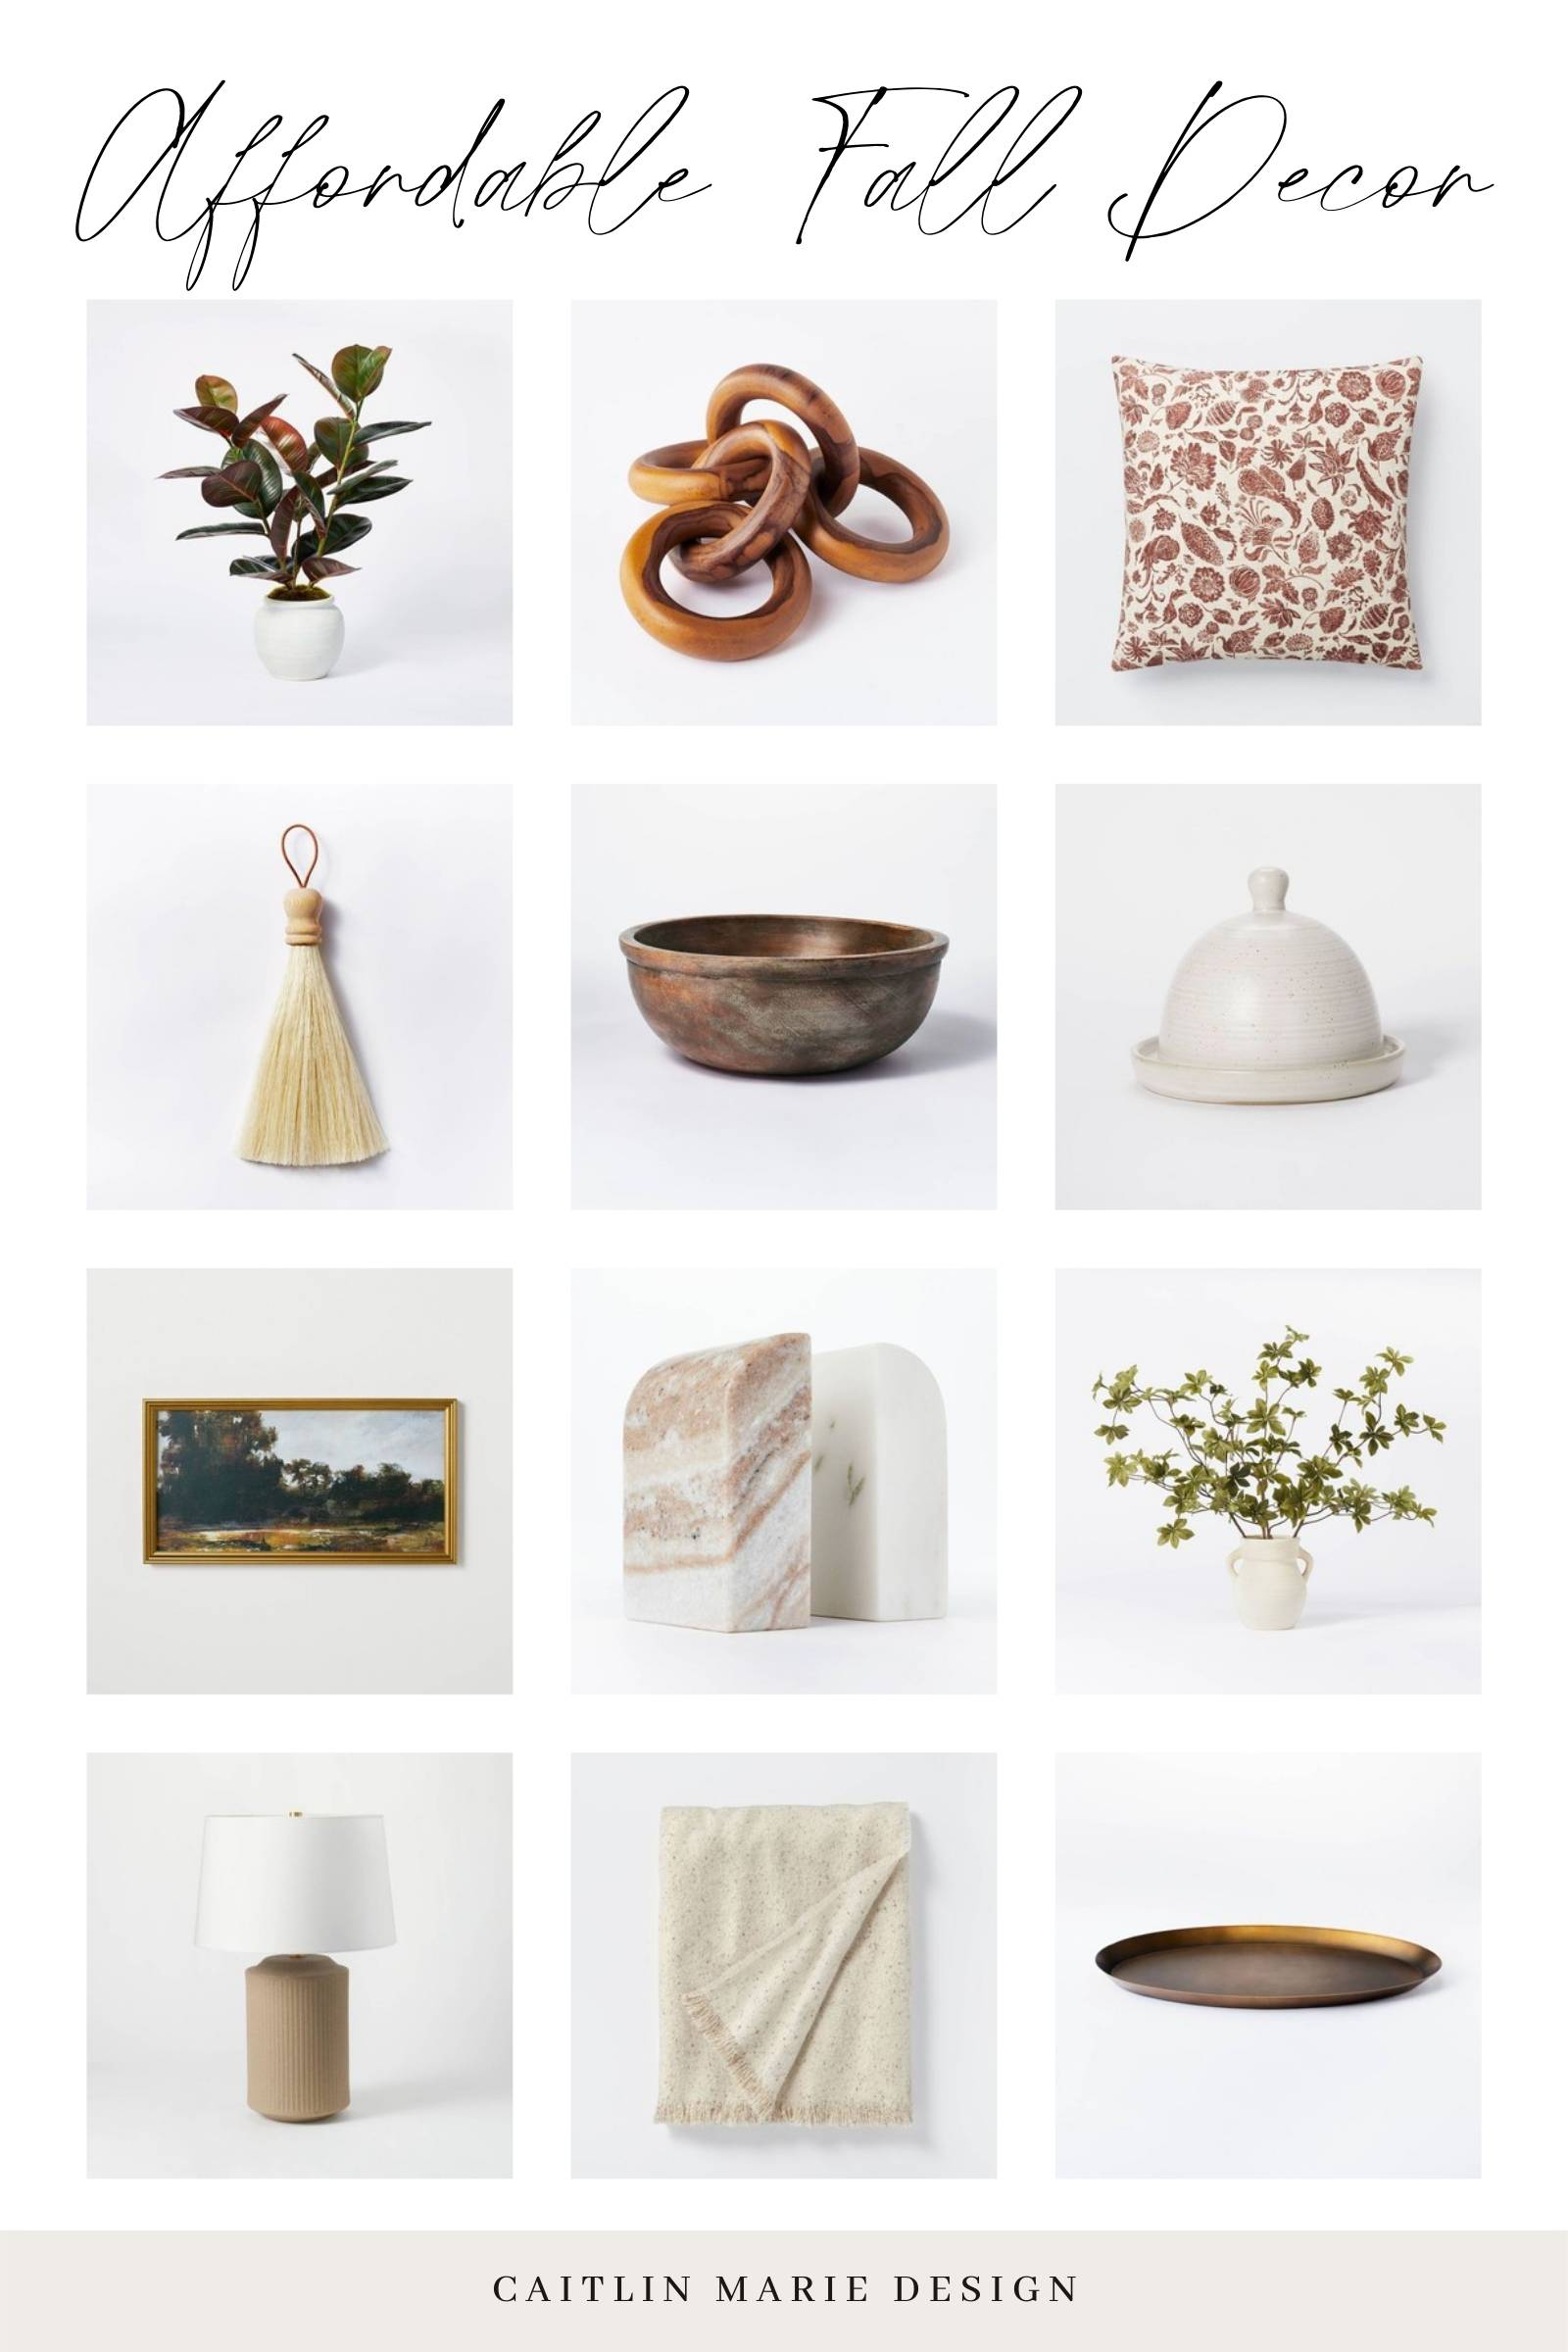 Studio McGee Fall Decor Finds 2021 - Target affordable fall decor round up with wood chain, fall throw pillow, framed landscape, etc